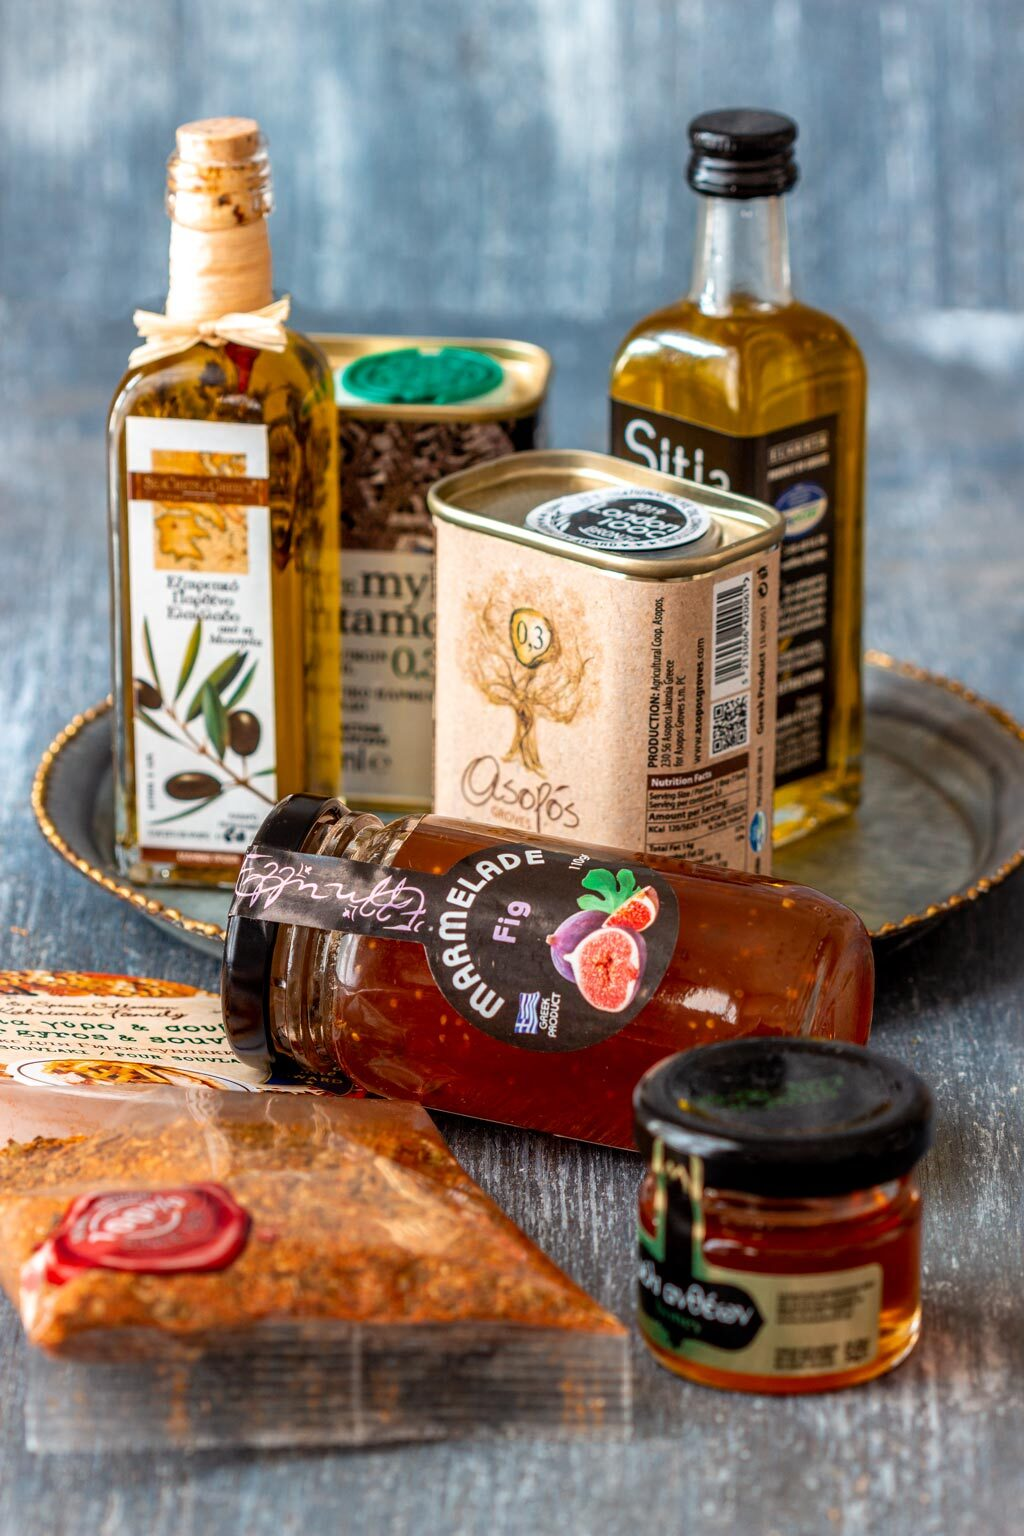 Selection of Edible Greek Souvenirs for Foodies